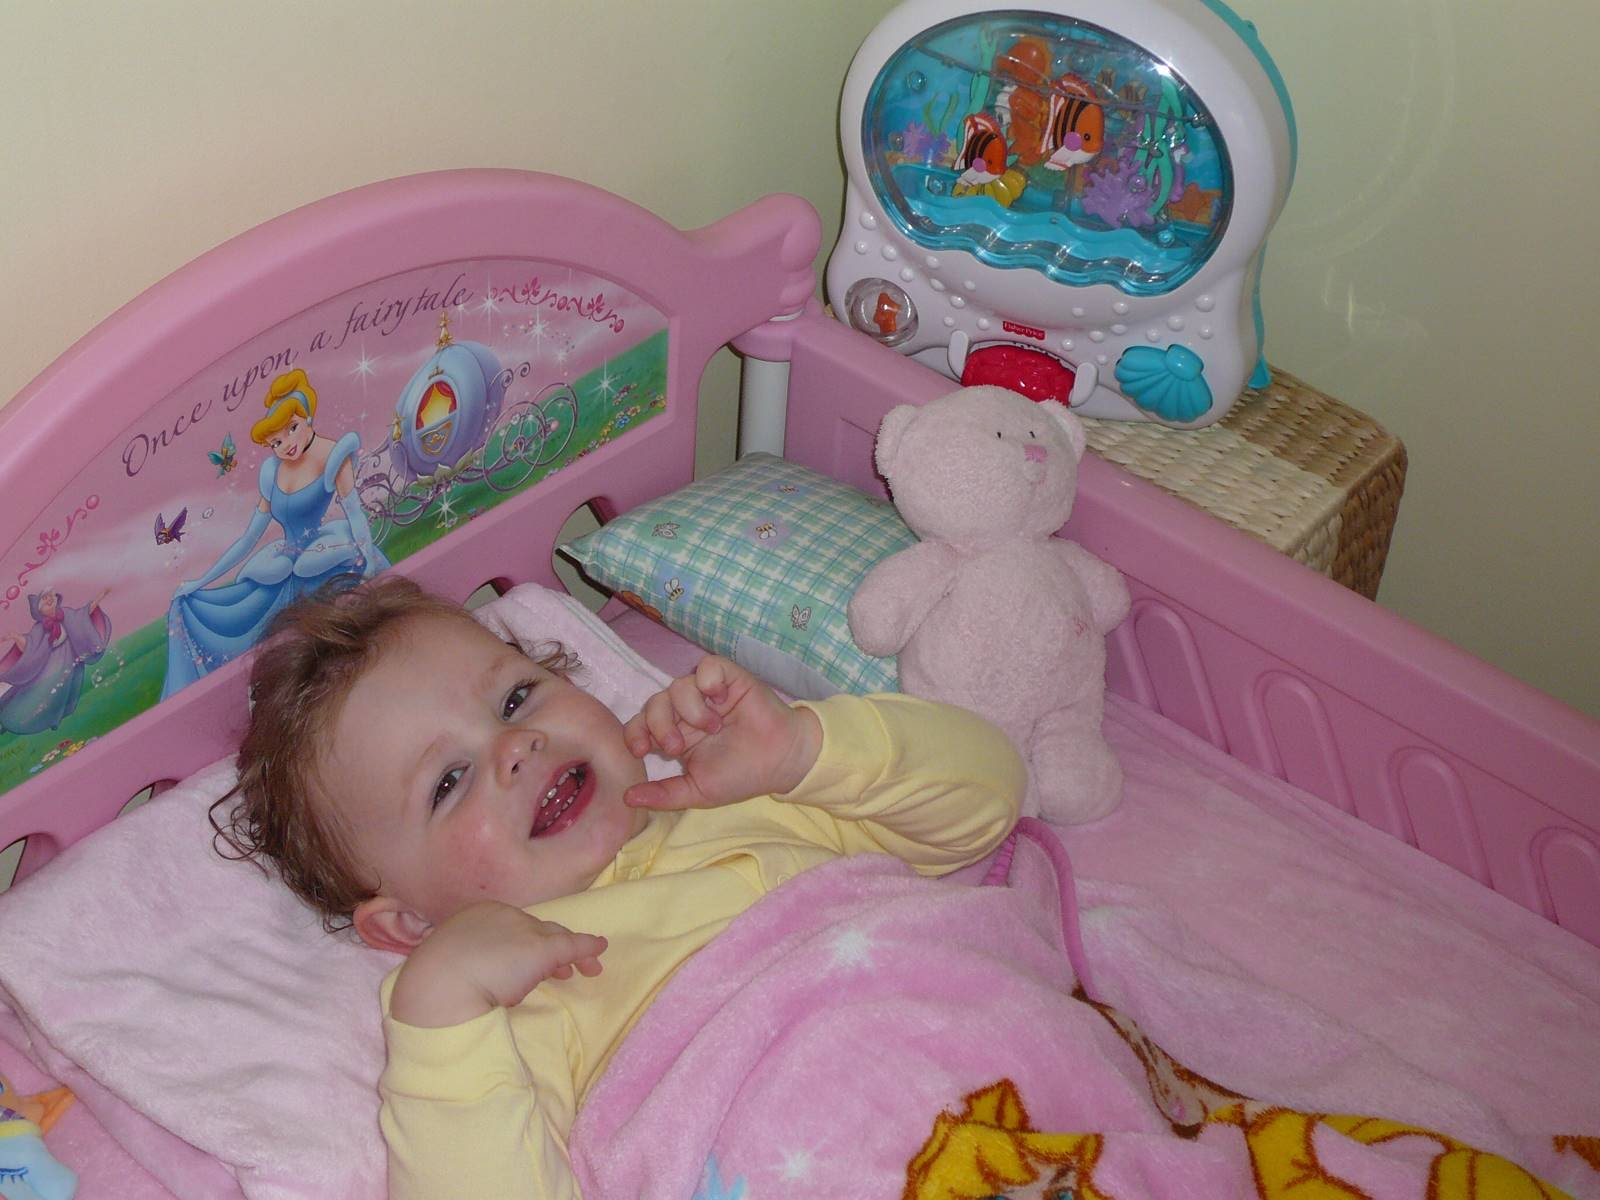 Popular May Kaitlyn in her new Cinderella toddler bed or as she likes to call it her princess bed